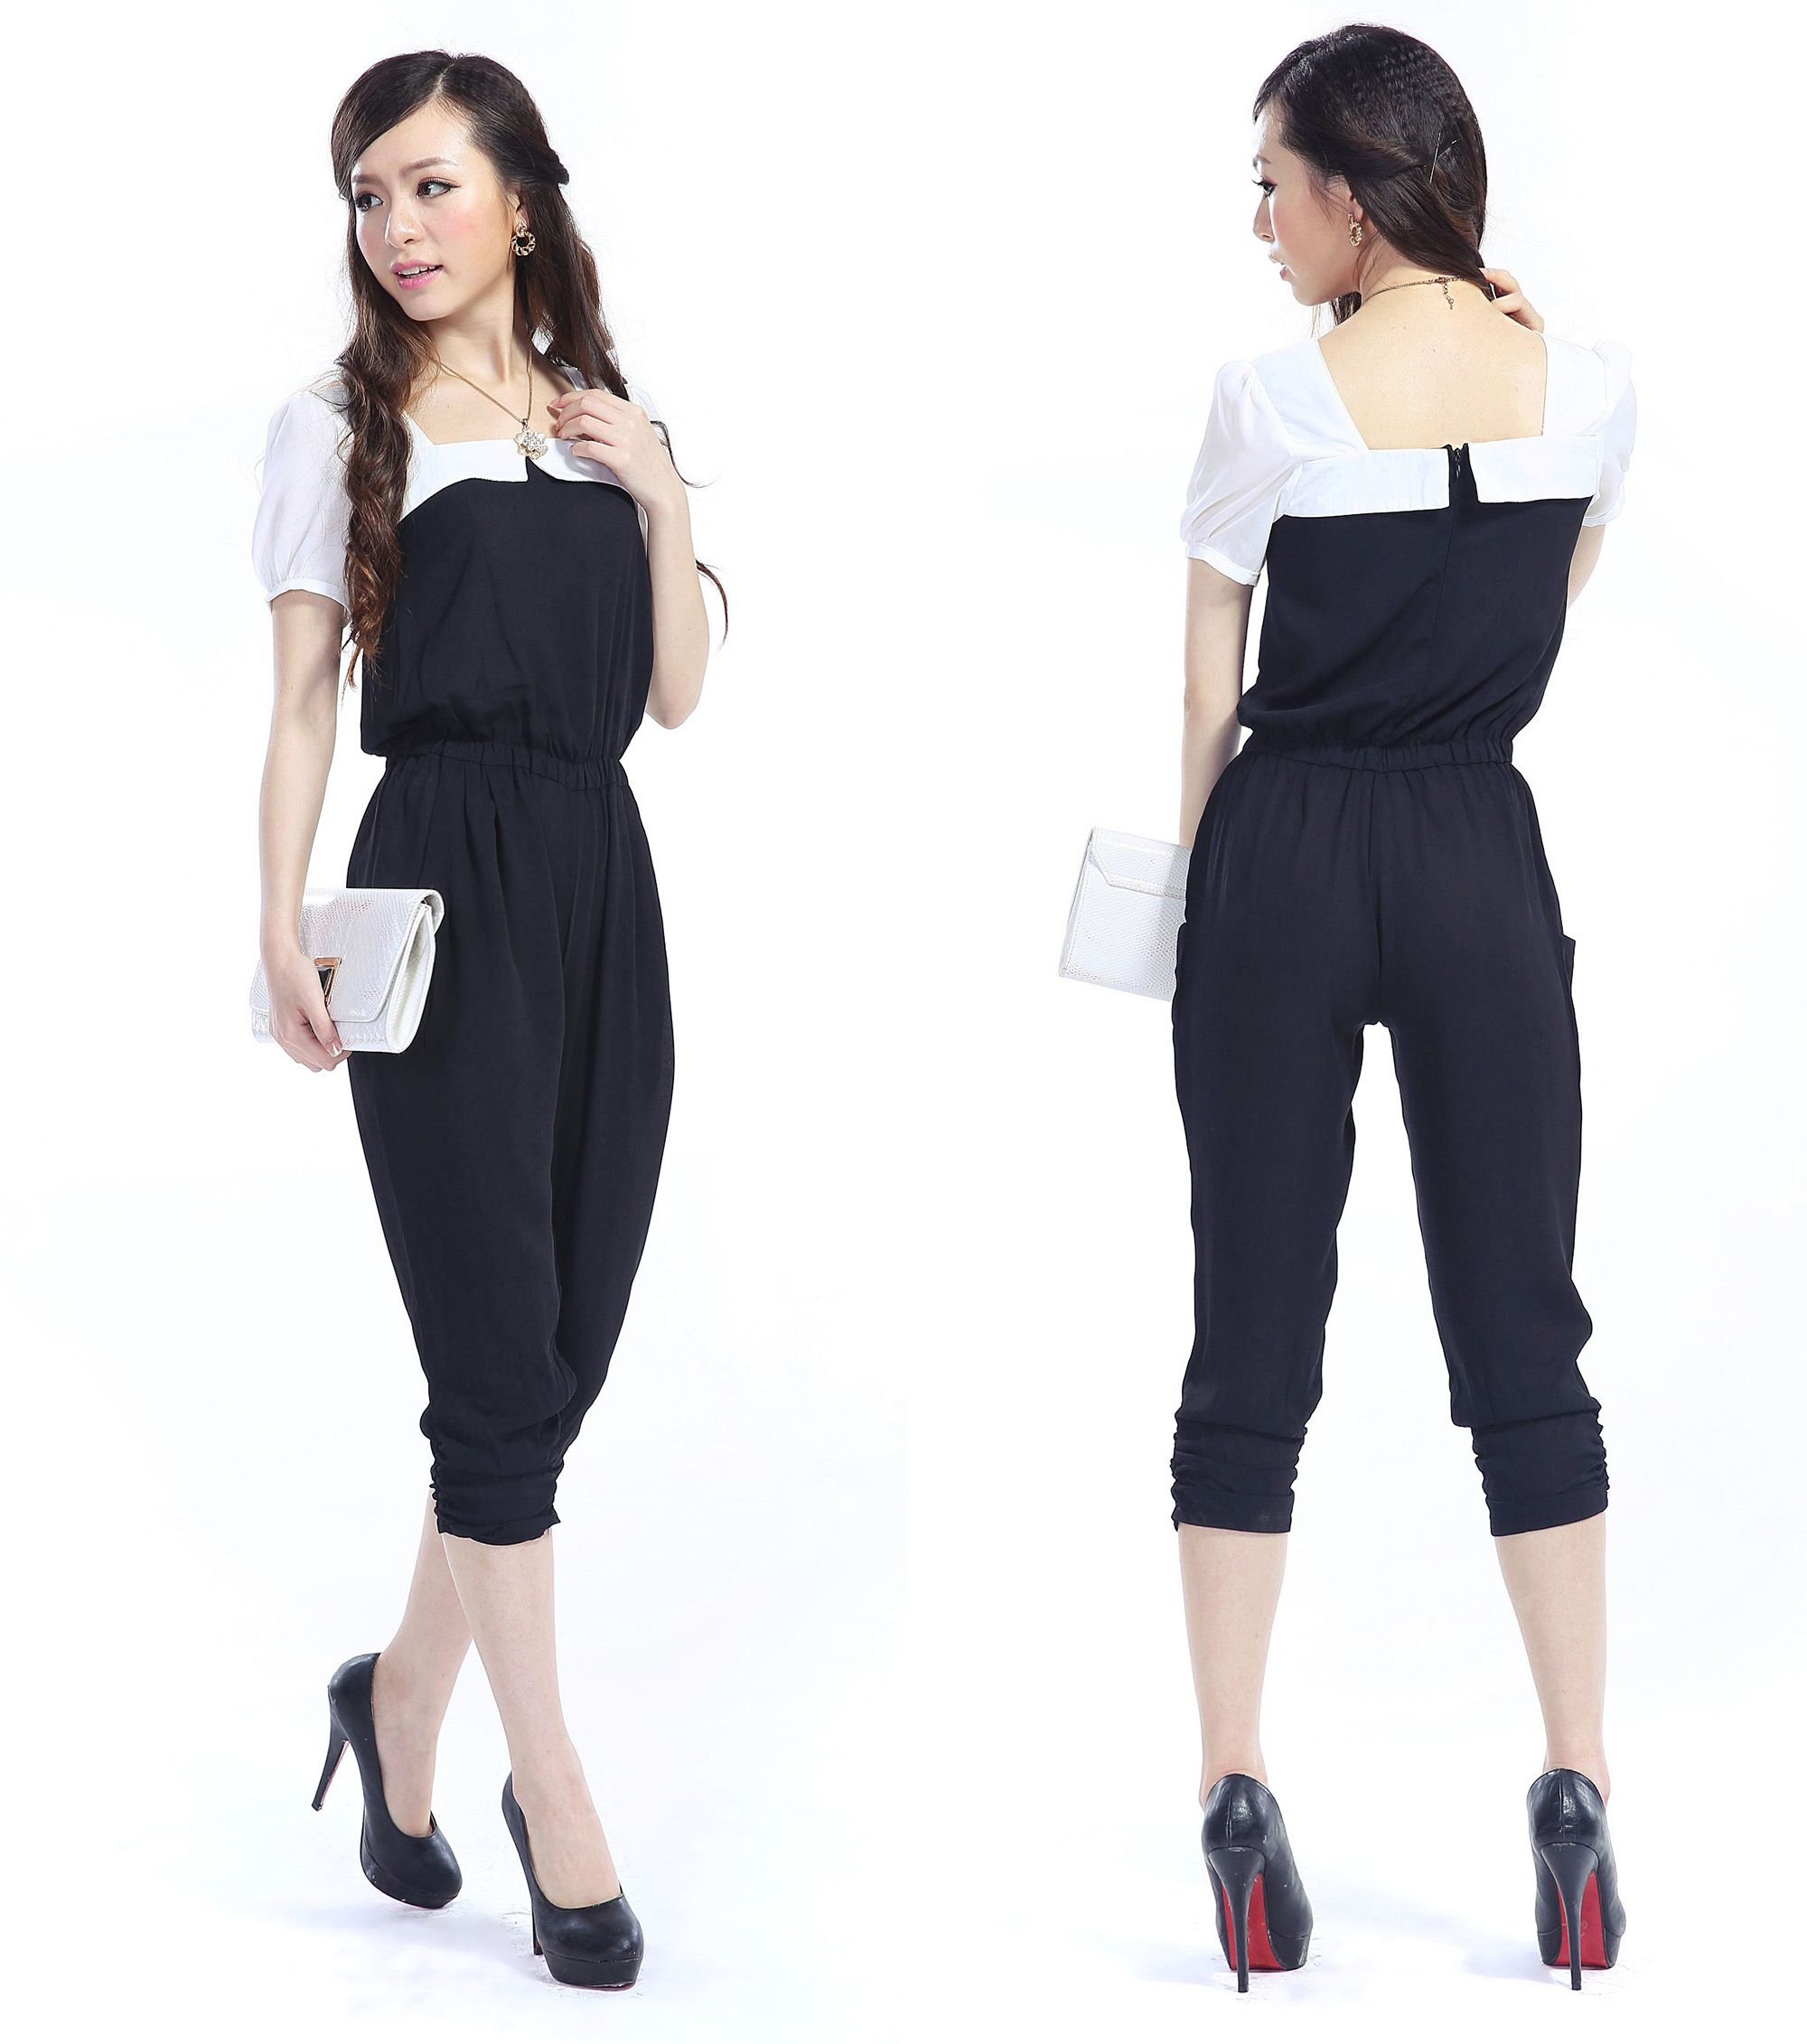 black and white fashion for women | waisted harem pants stitching ...